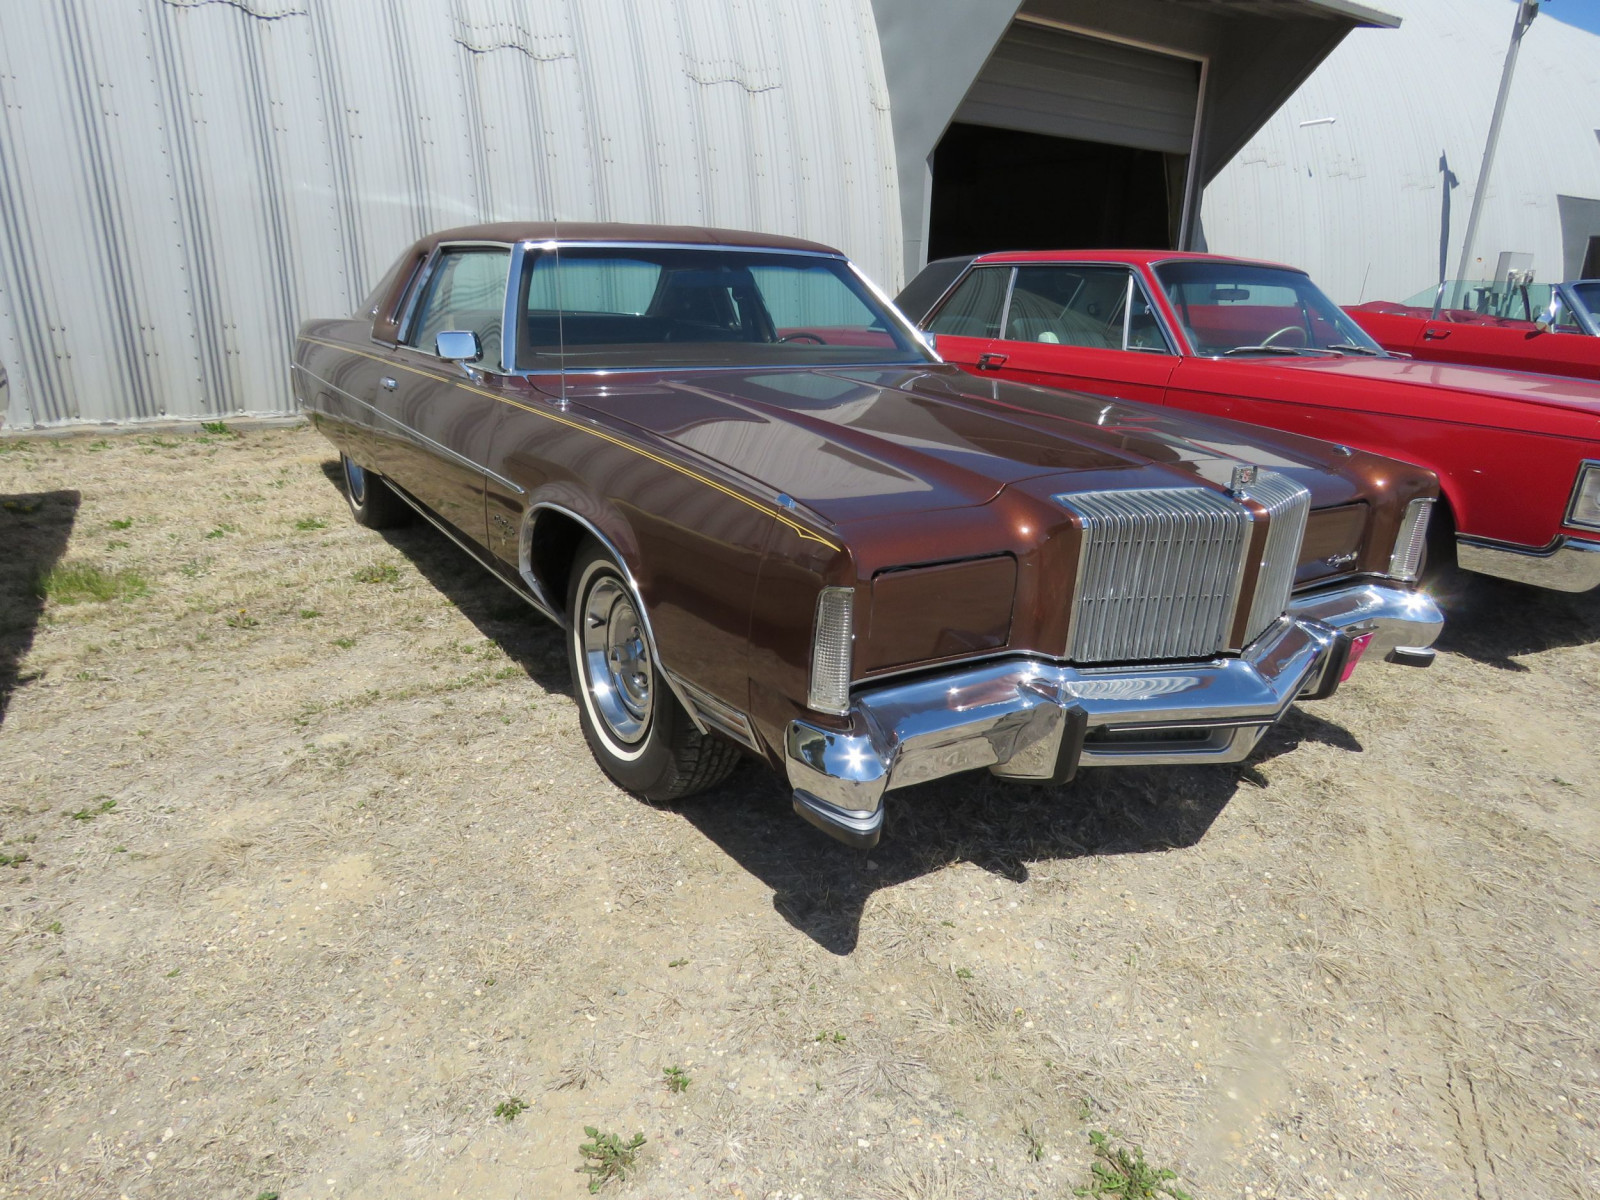 1977 Chrysler New Yorker Brougham with ST. Regis package - Image 3